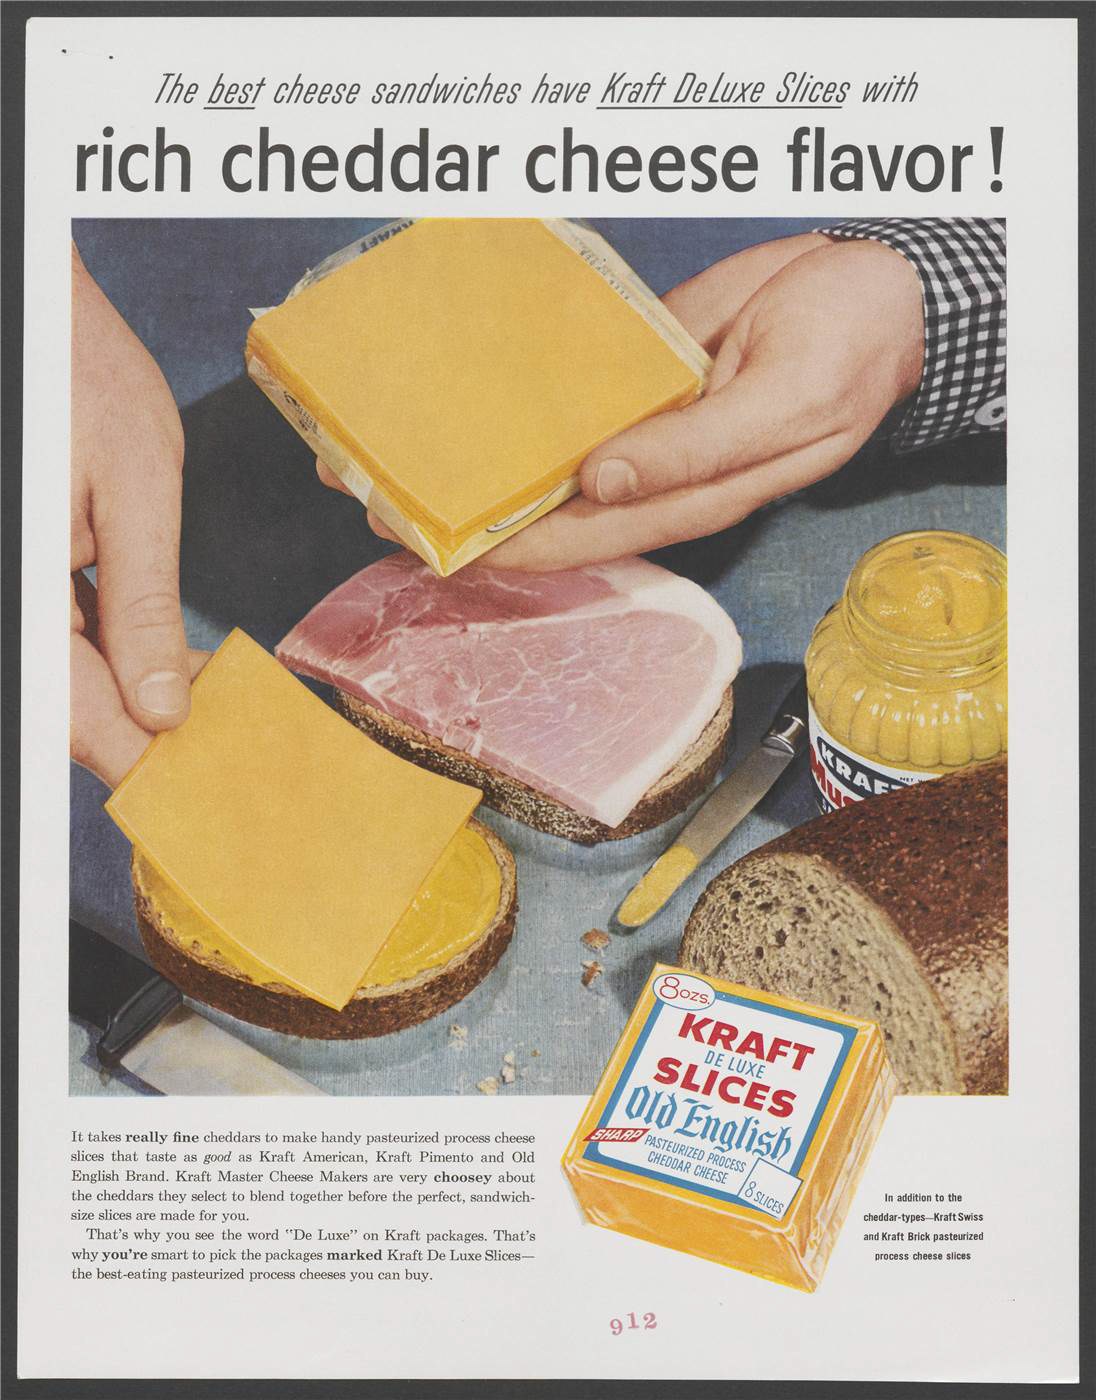 """The best cheese sandwiches have Kraft De Luxe Slices with rich cheddar cheese flavor!"" Photograph of a cheese and ham sandwich being prepared with Kraft mustard and slices of Kraft cheese. The packaging for Kraft De Luxe Slices is shown below. Stresses the quality of Kraft cheeses."